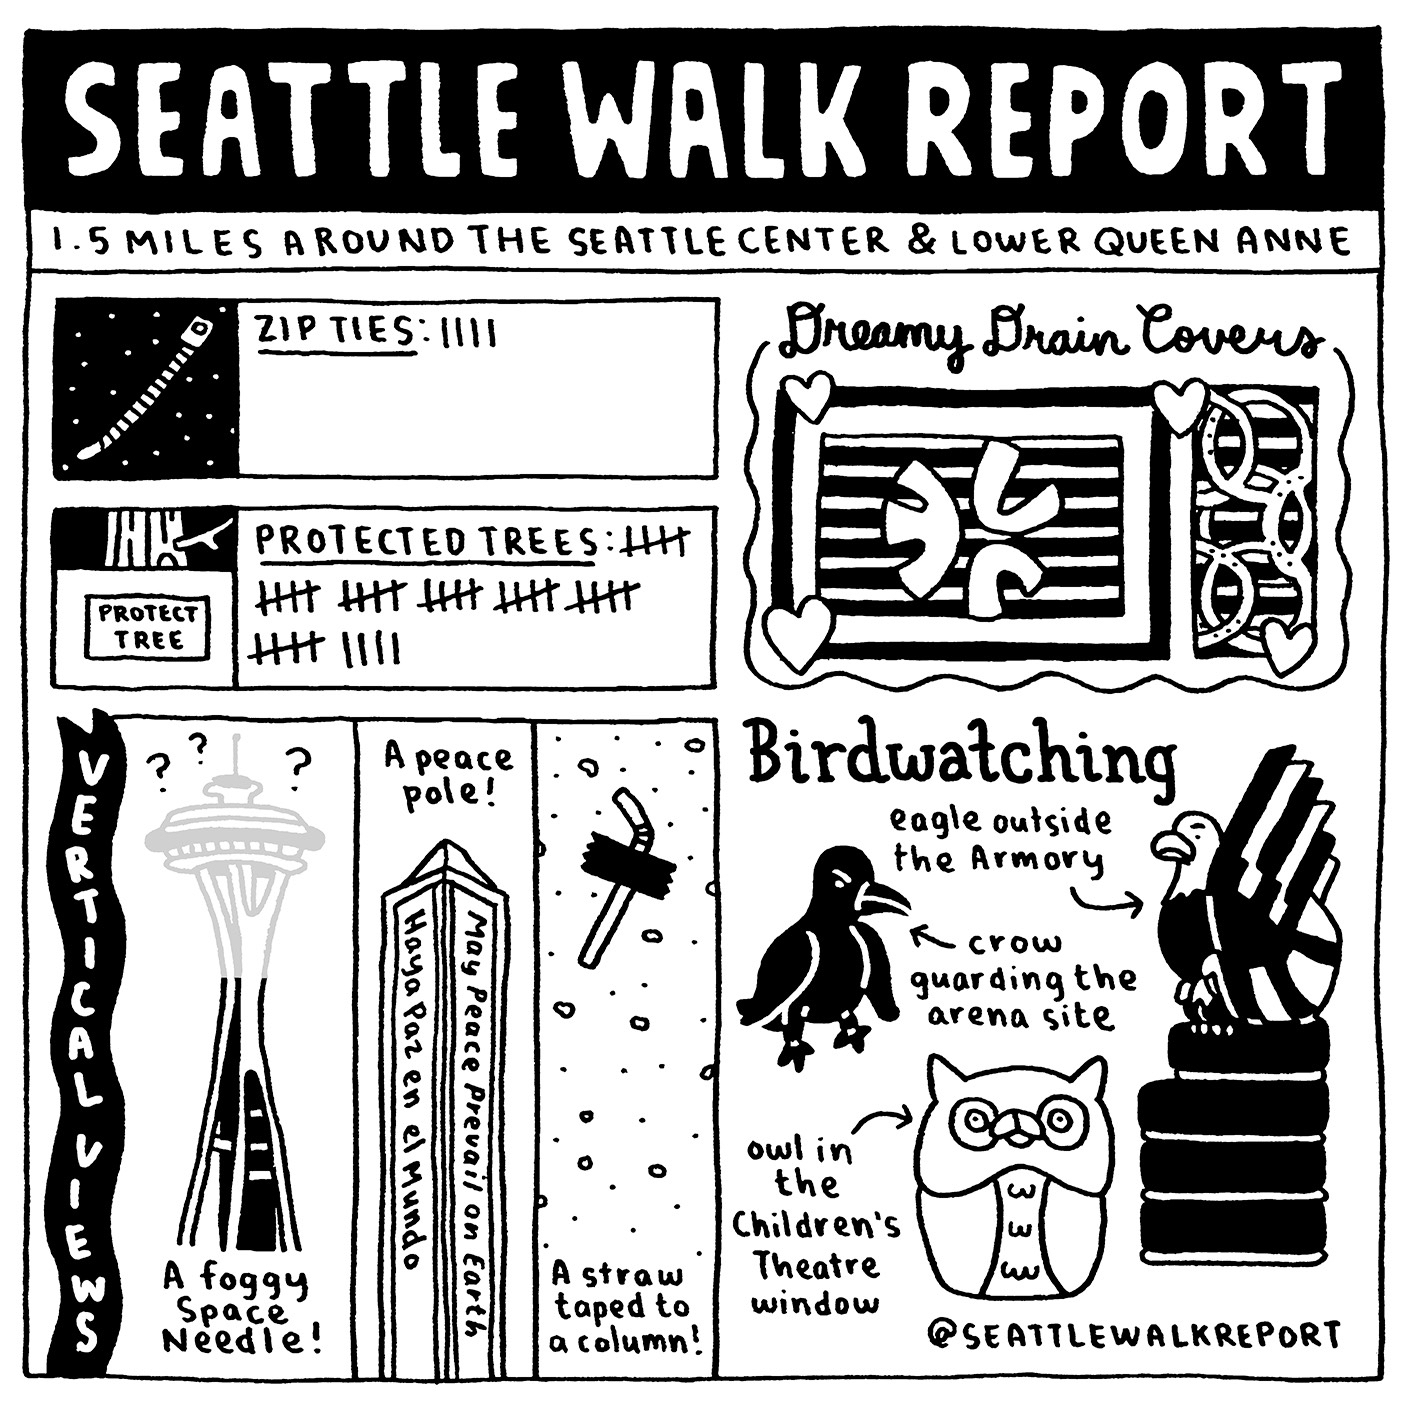 Seattle Walk Report comic about Seattle Center